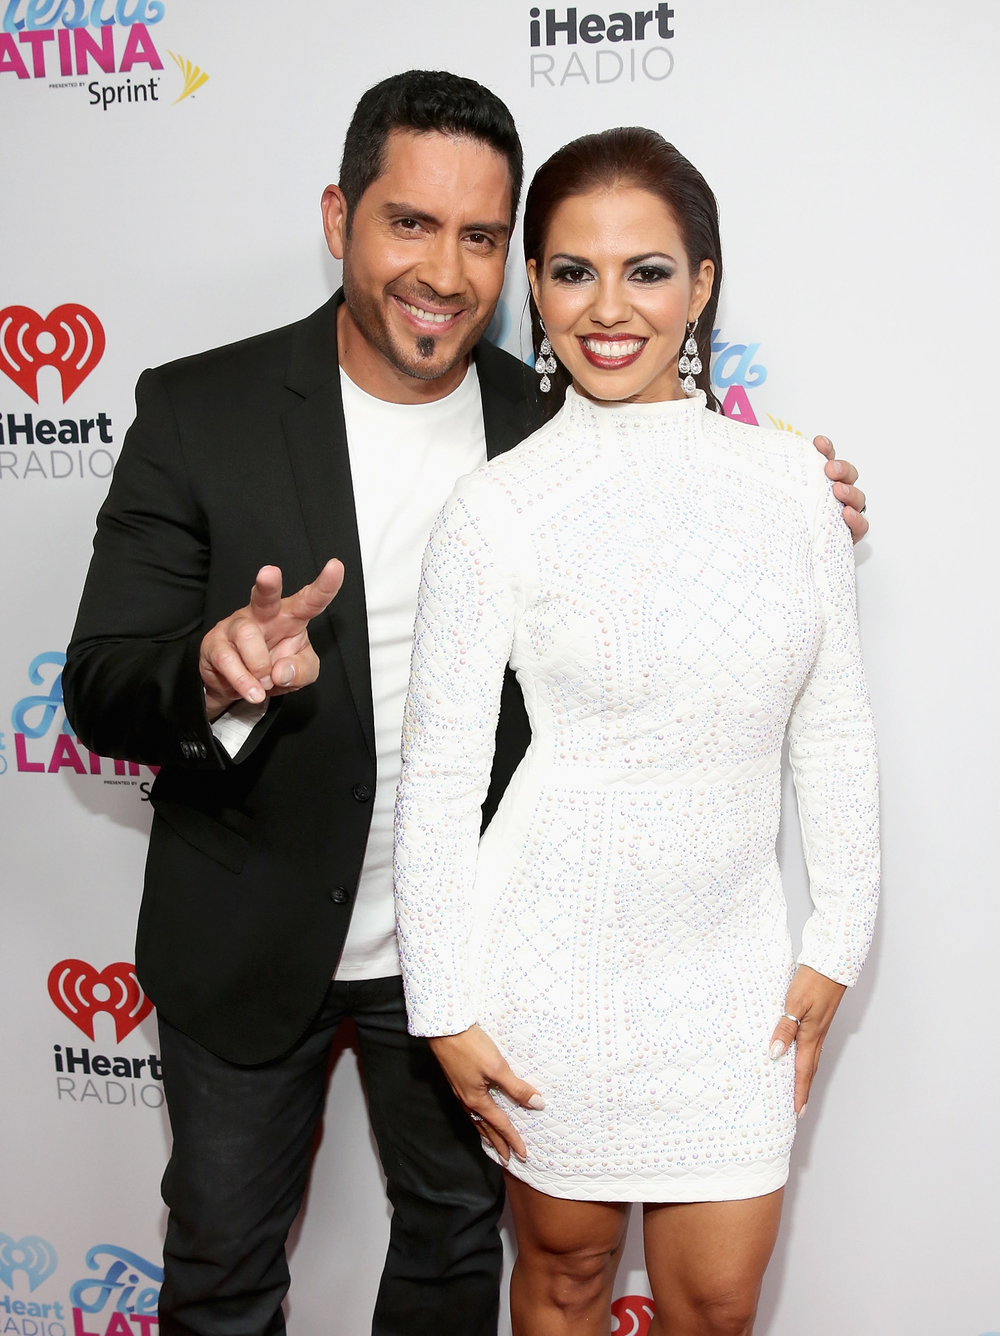 MIAMI, FL - NOVEMBER 07:  Radio personalities John Musa (L) and Jenny Castillo attend iHeartRadio Fiesta Latina presented by Sprint at American Airlines Arena on November 7, 2015 in Miami, Florida.  (Photo by Aaron Davidson/Getty Images for iHeartMedia) *** Local Caption *** John Musa;Jenny Castillo